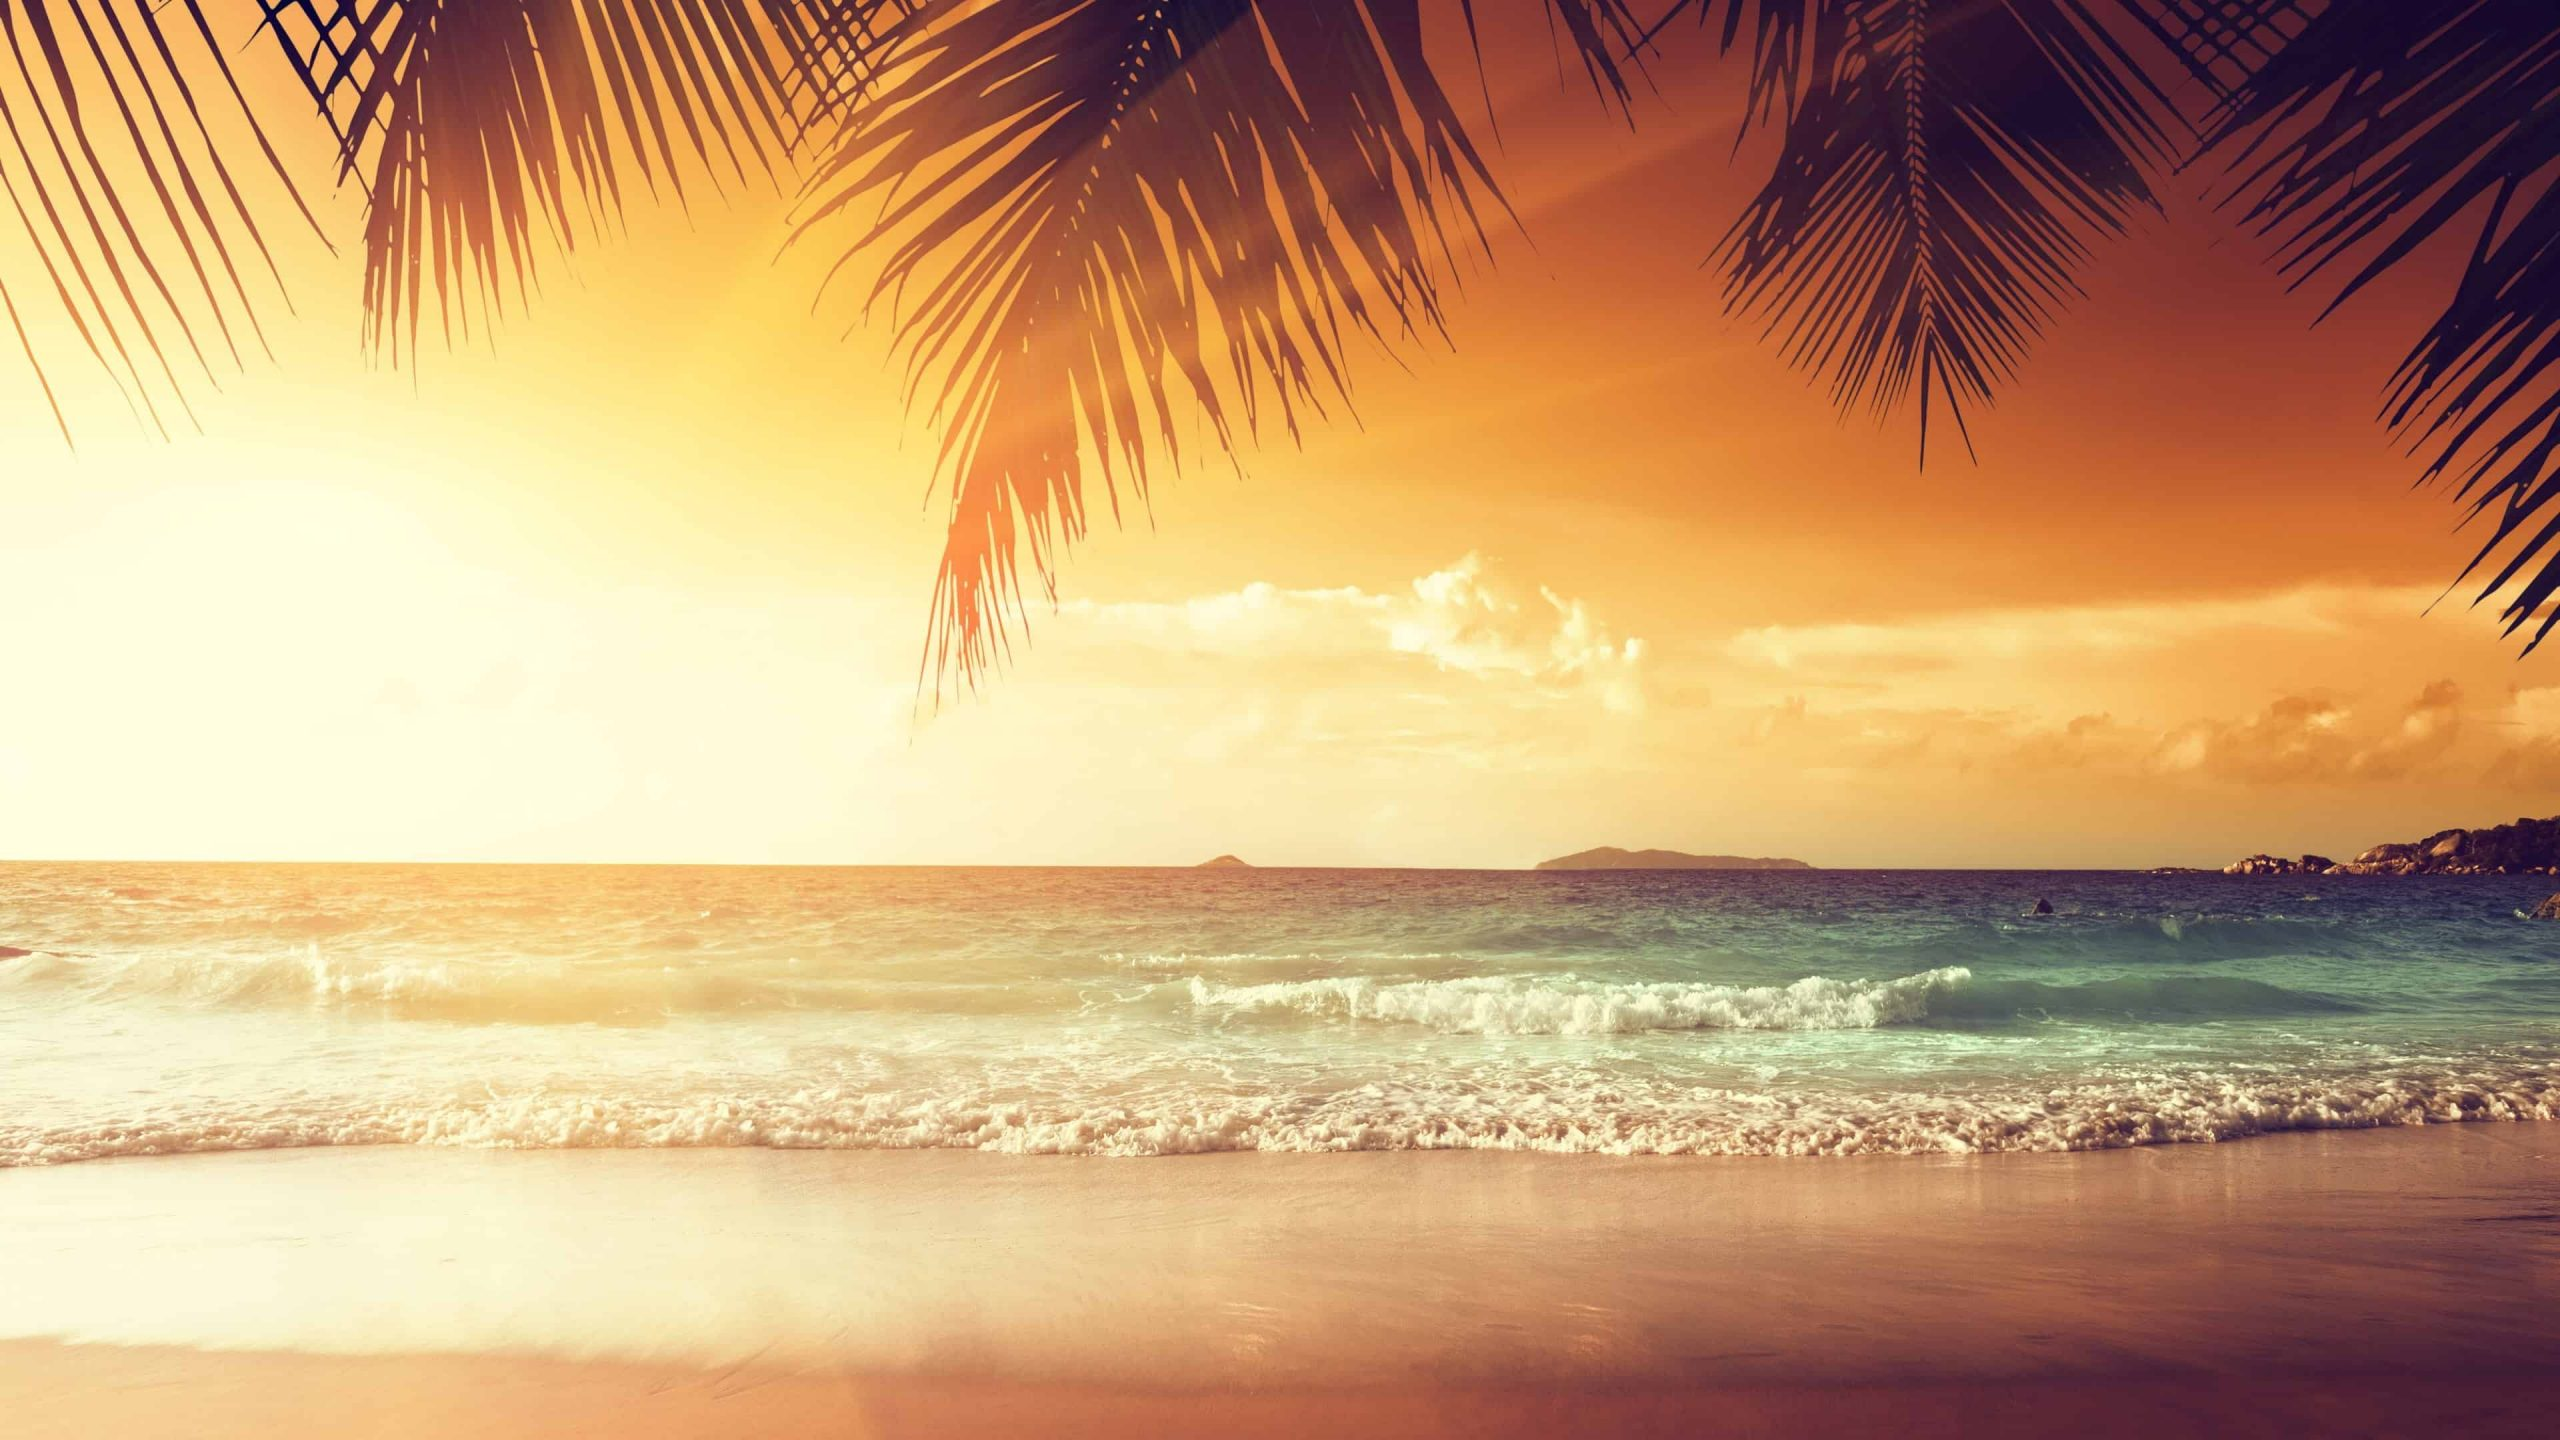 tropical beach with palm trees at sunset uhd 4k wallpaper